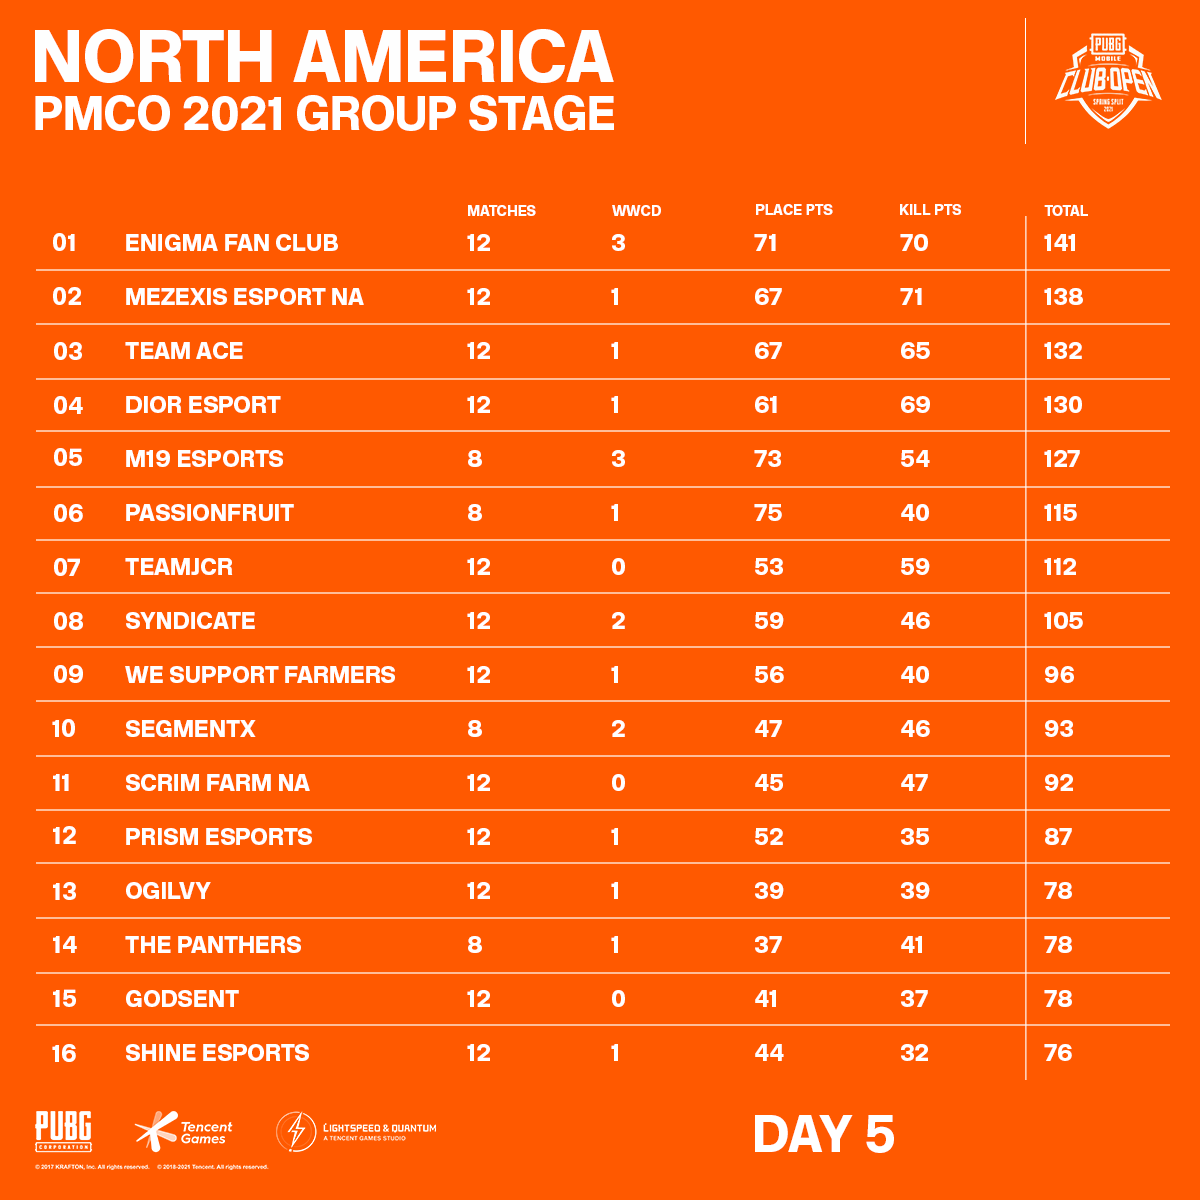 North America PMCO 2021 Group Stage Day 5 Standings